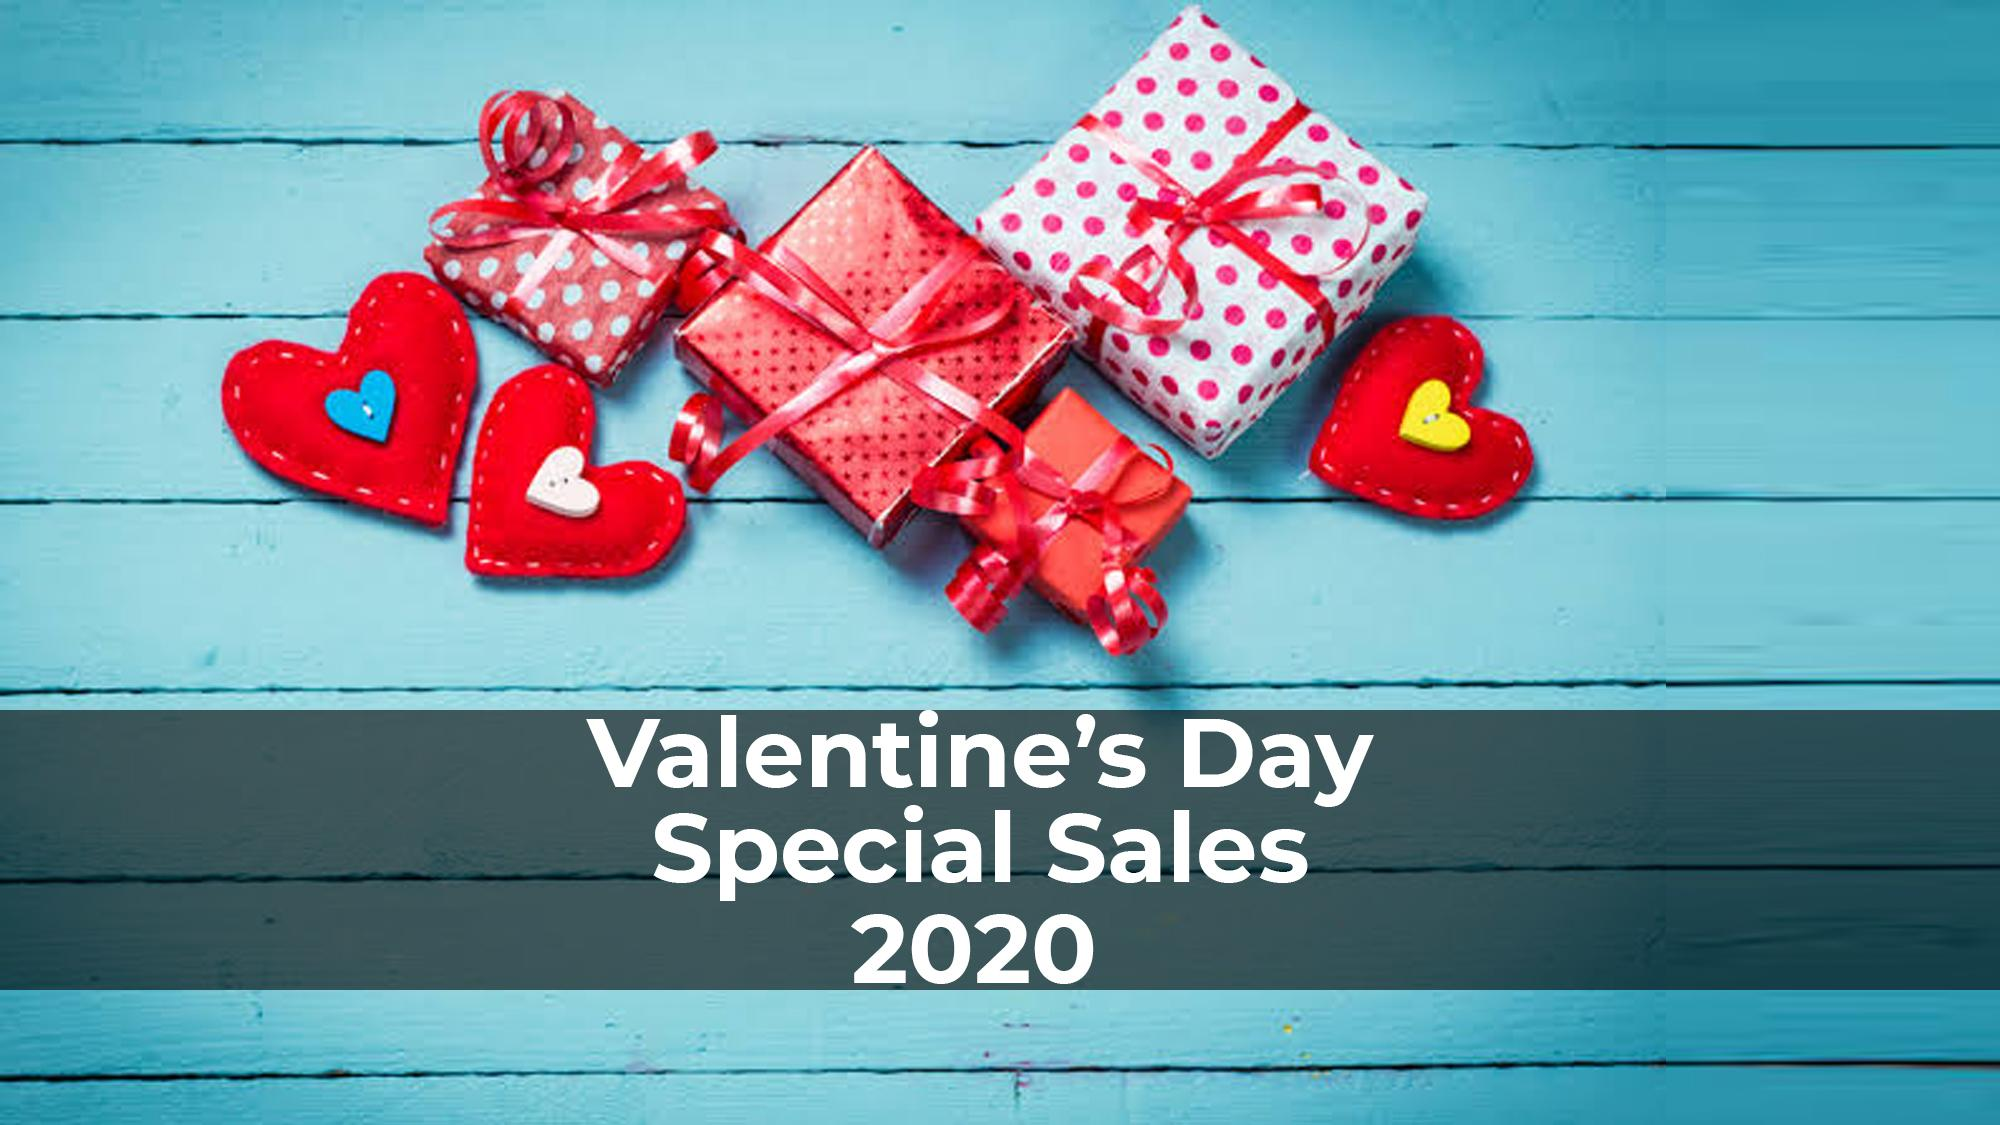 Valentine's Day Special Sales 2020